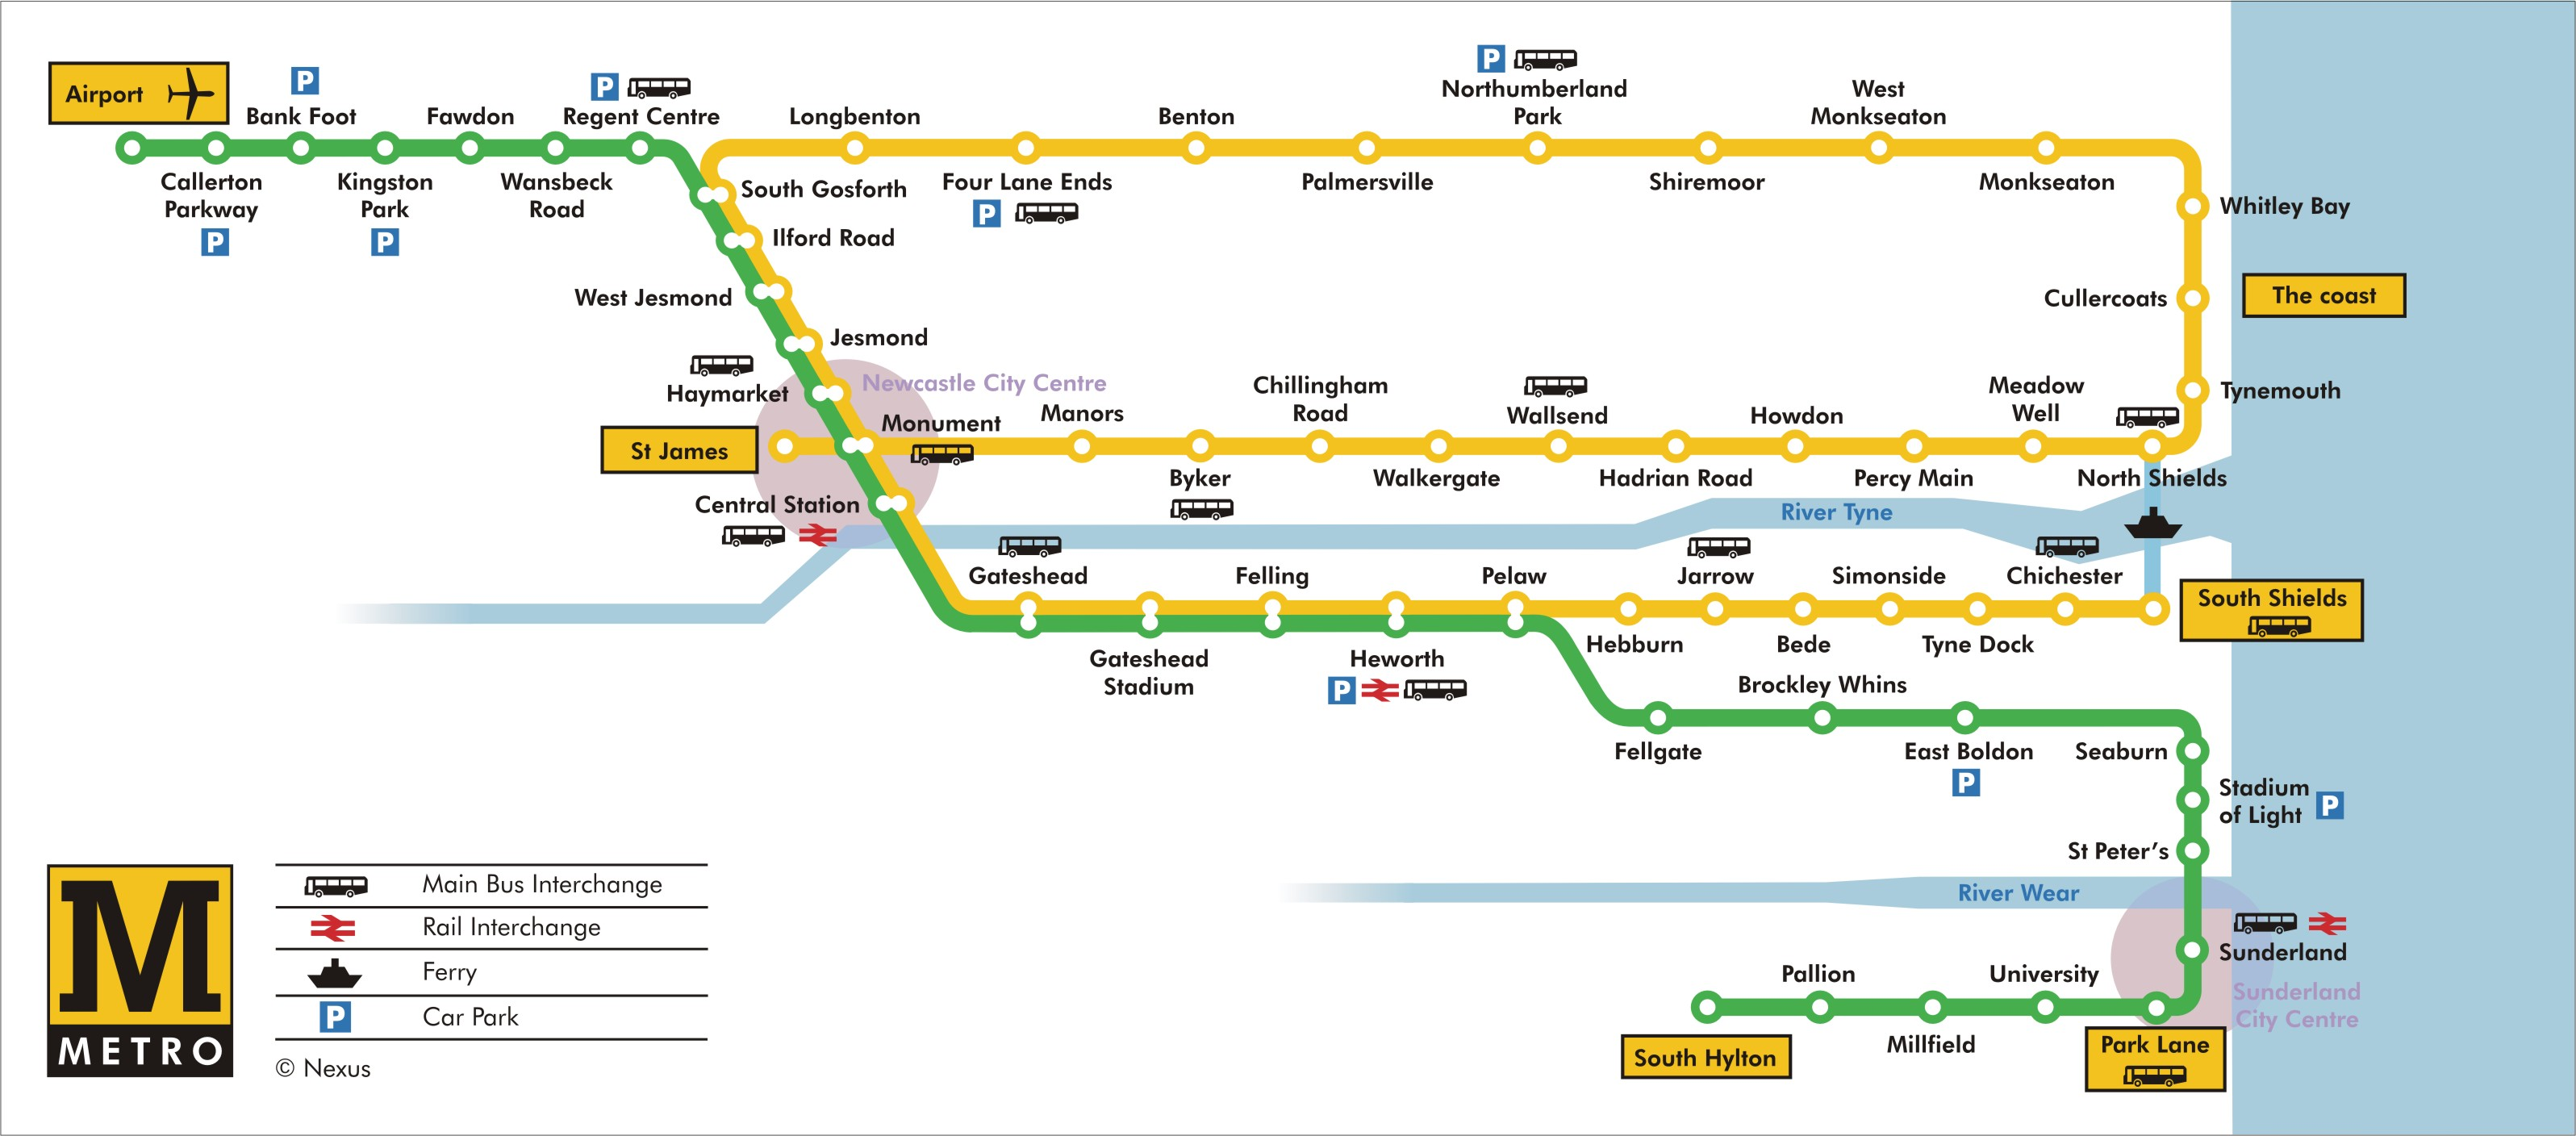 Tyne and Wear Metro Route Map Tyne and Wear England mappery